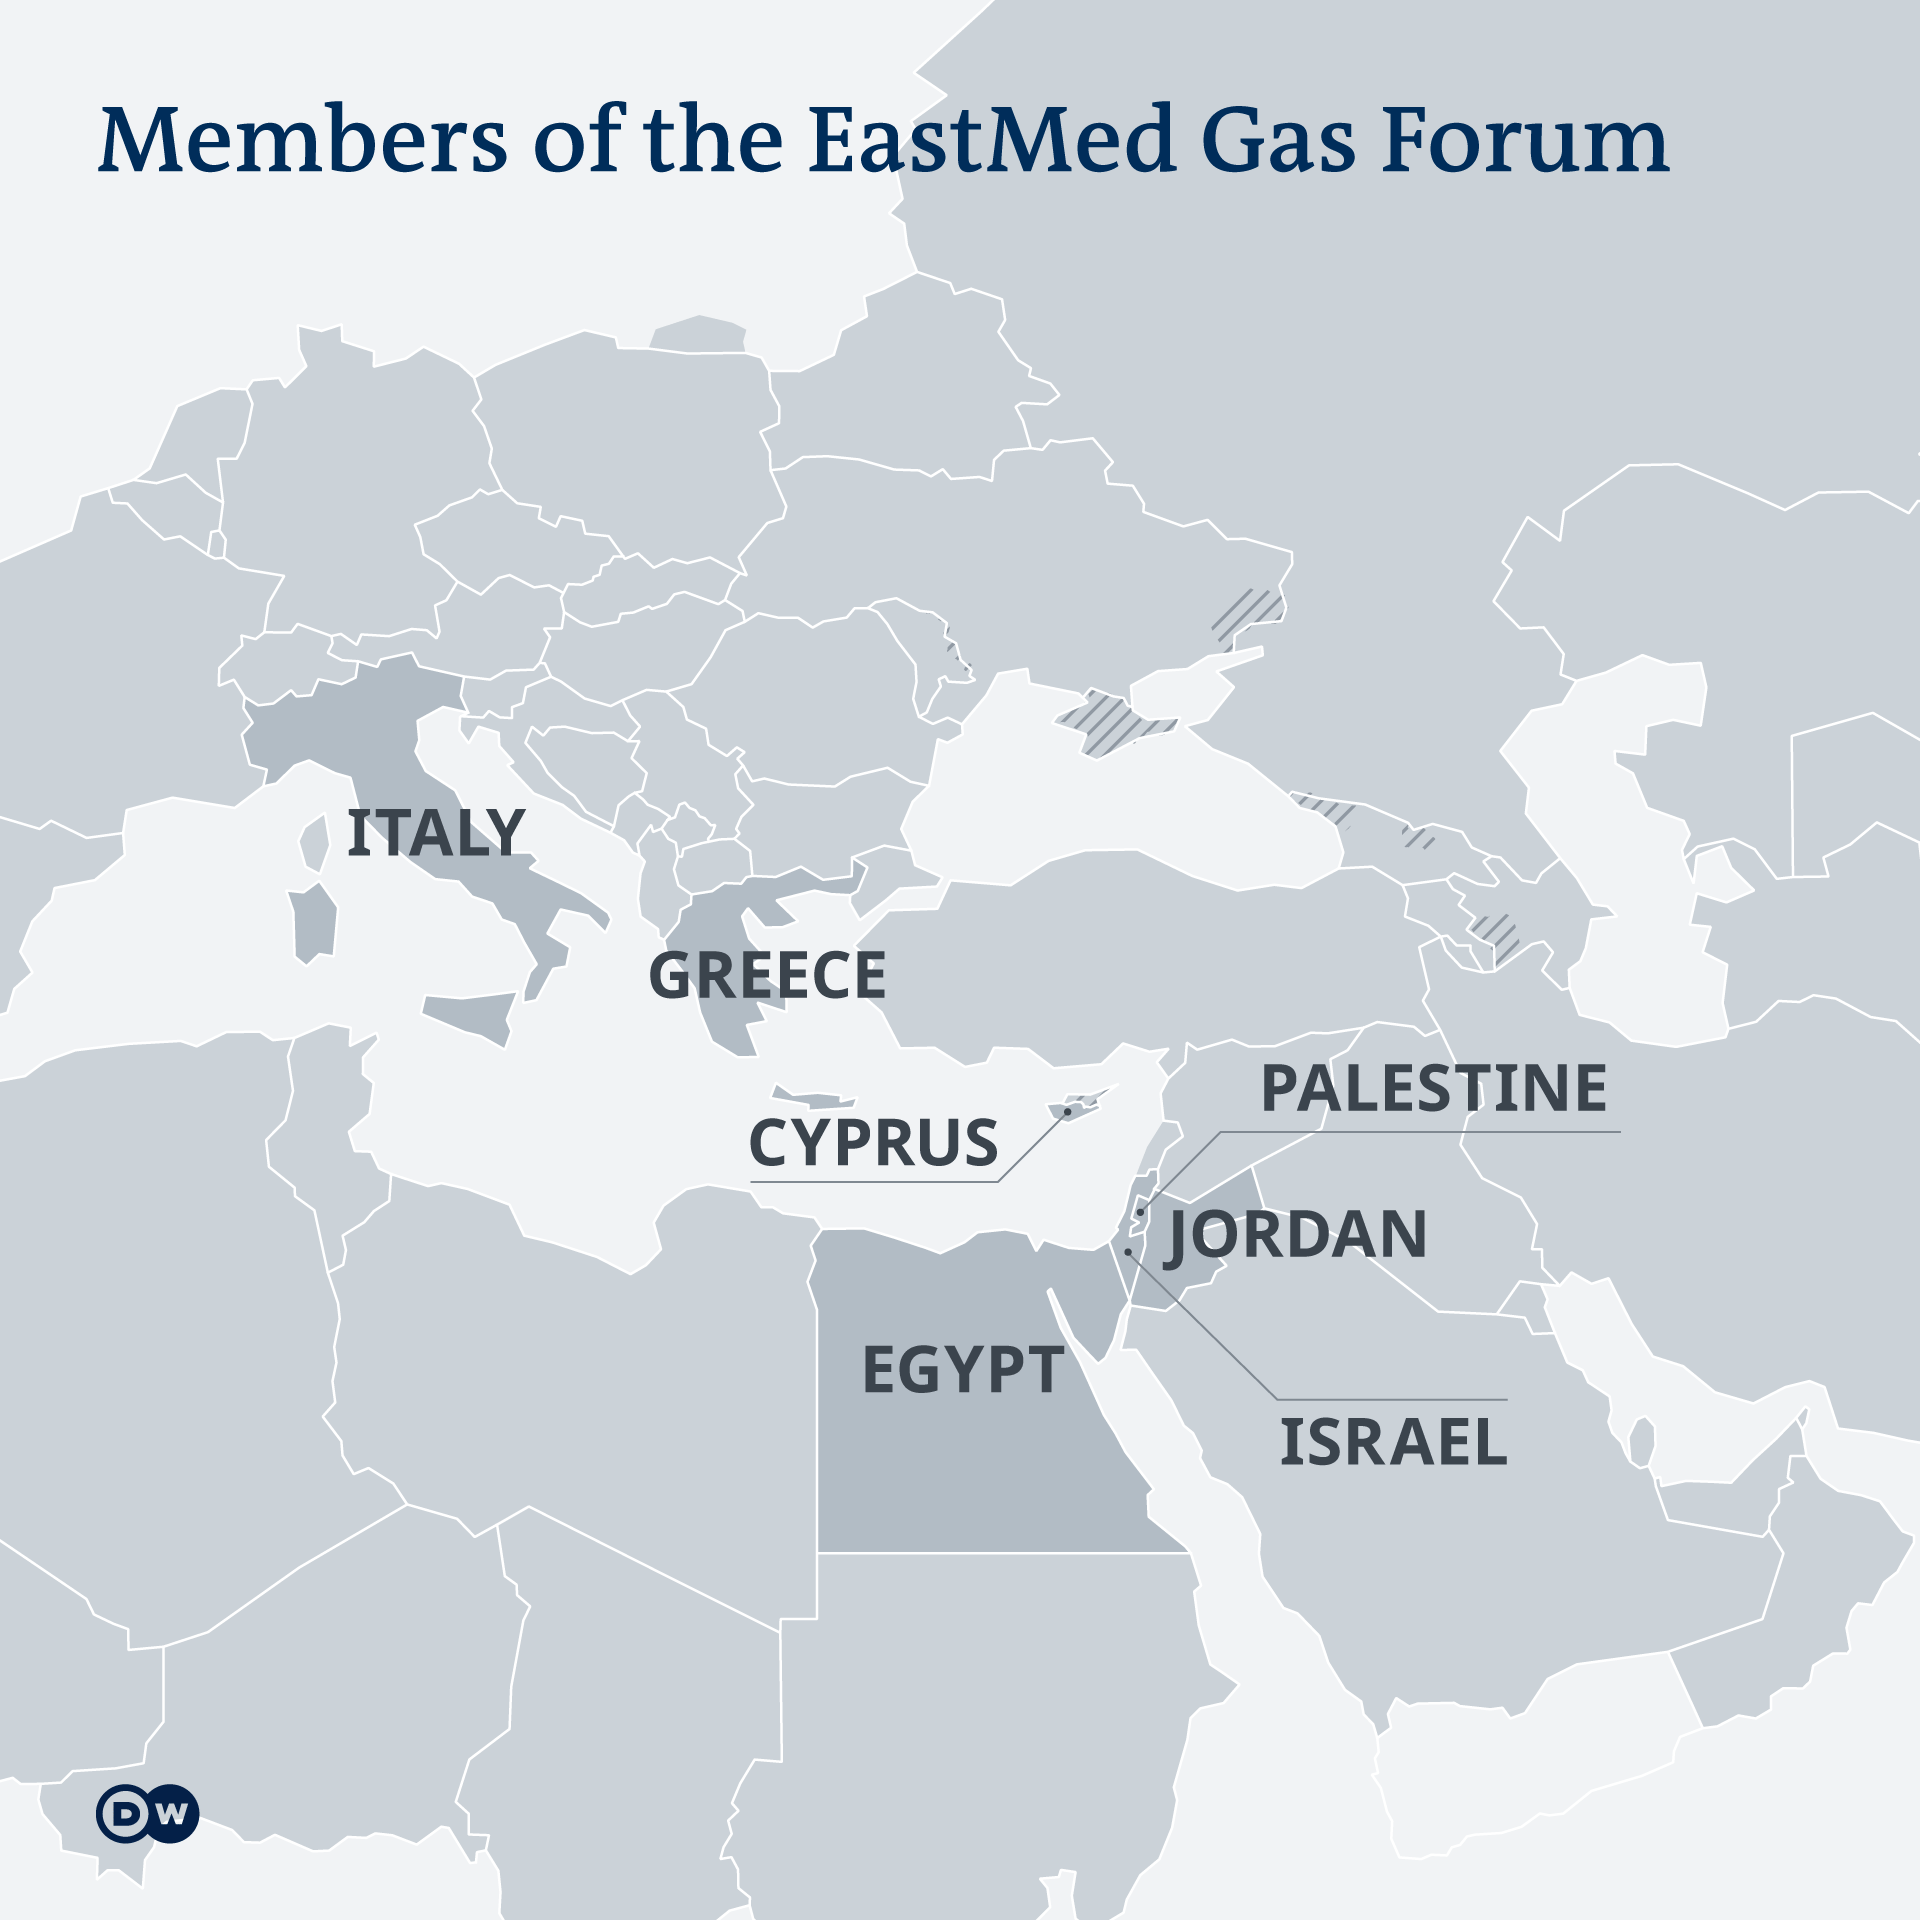 A map showing the members of the EastMed Gas Forum, including Italy, Palestine Territoy, Greece, Cyprus, Jordan, Egypt, Israel